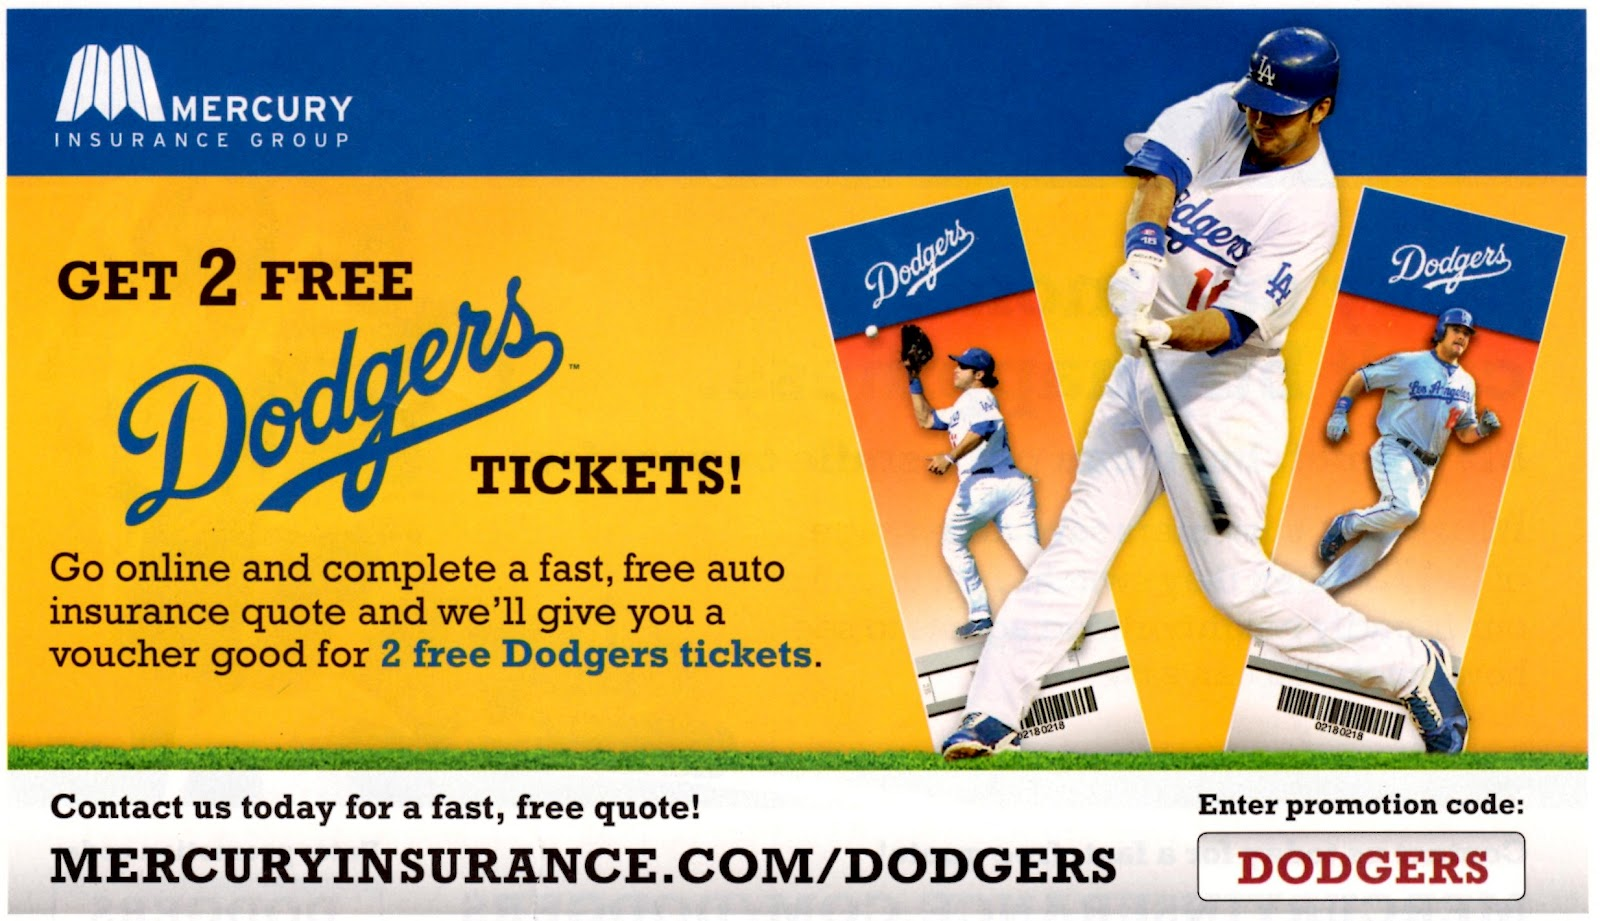 Mercury Insurance Quote Vin Scully Is My Homeboy Get 2 Free Dodgers Tickets From Mercury